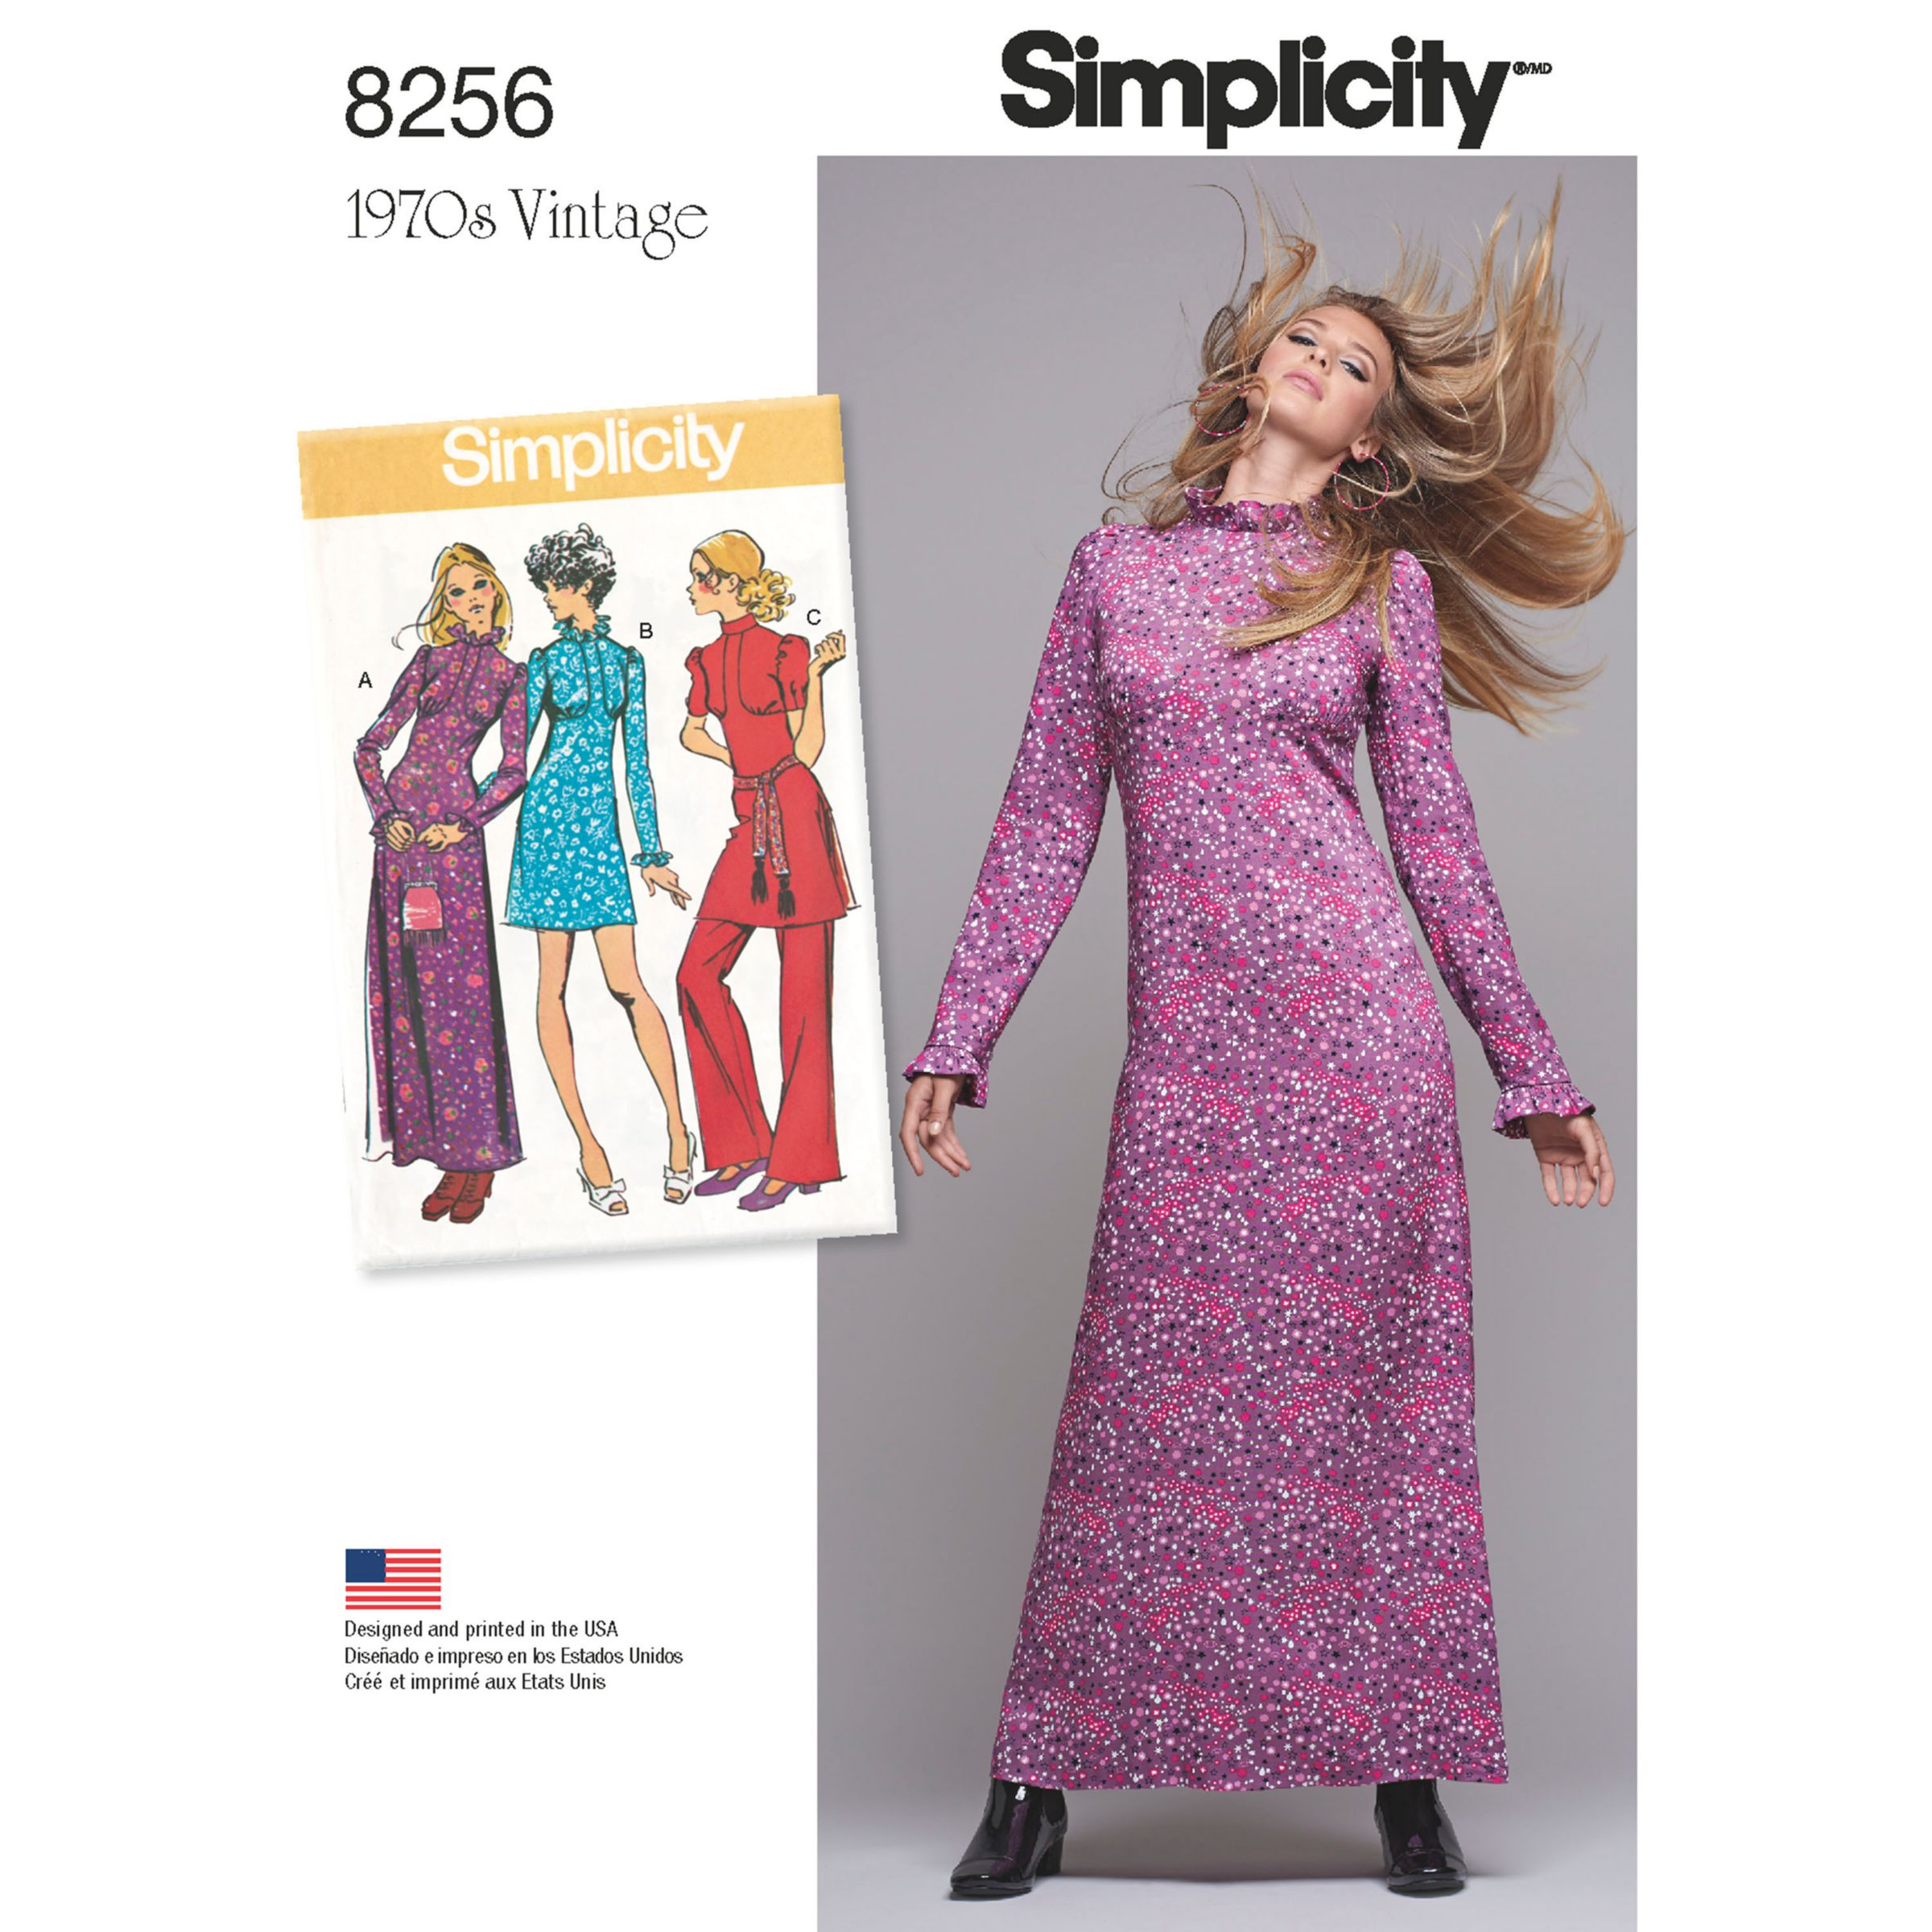 Simplicity Simplicity Vintage Women's 1970s Dresses Sewing Pattern, 8256